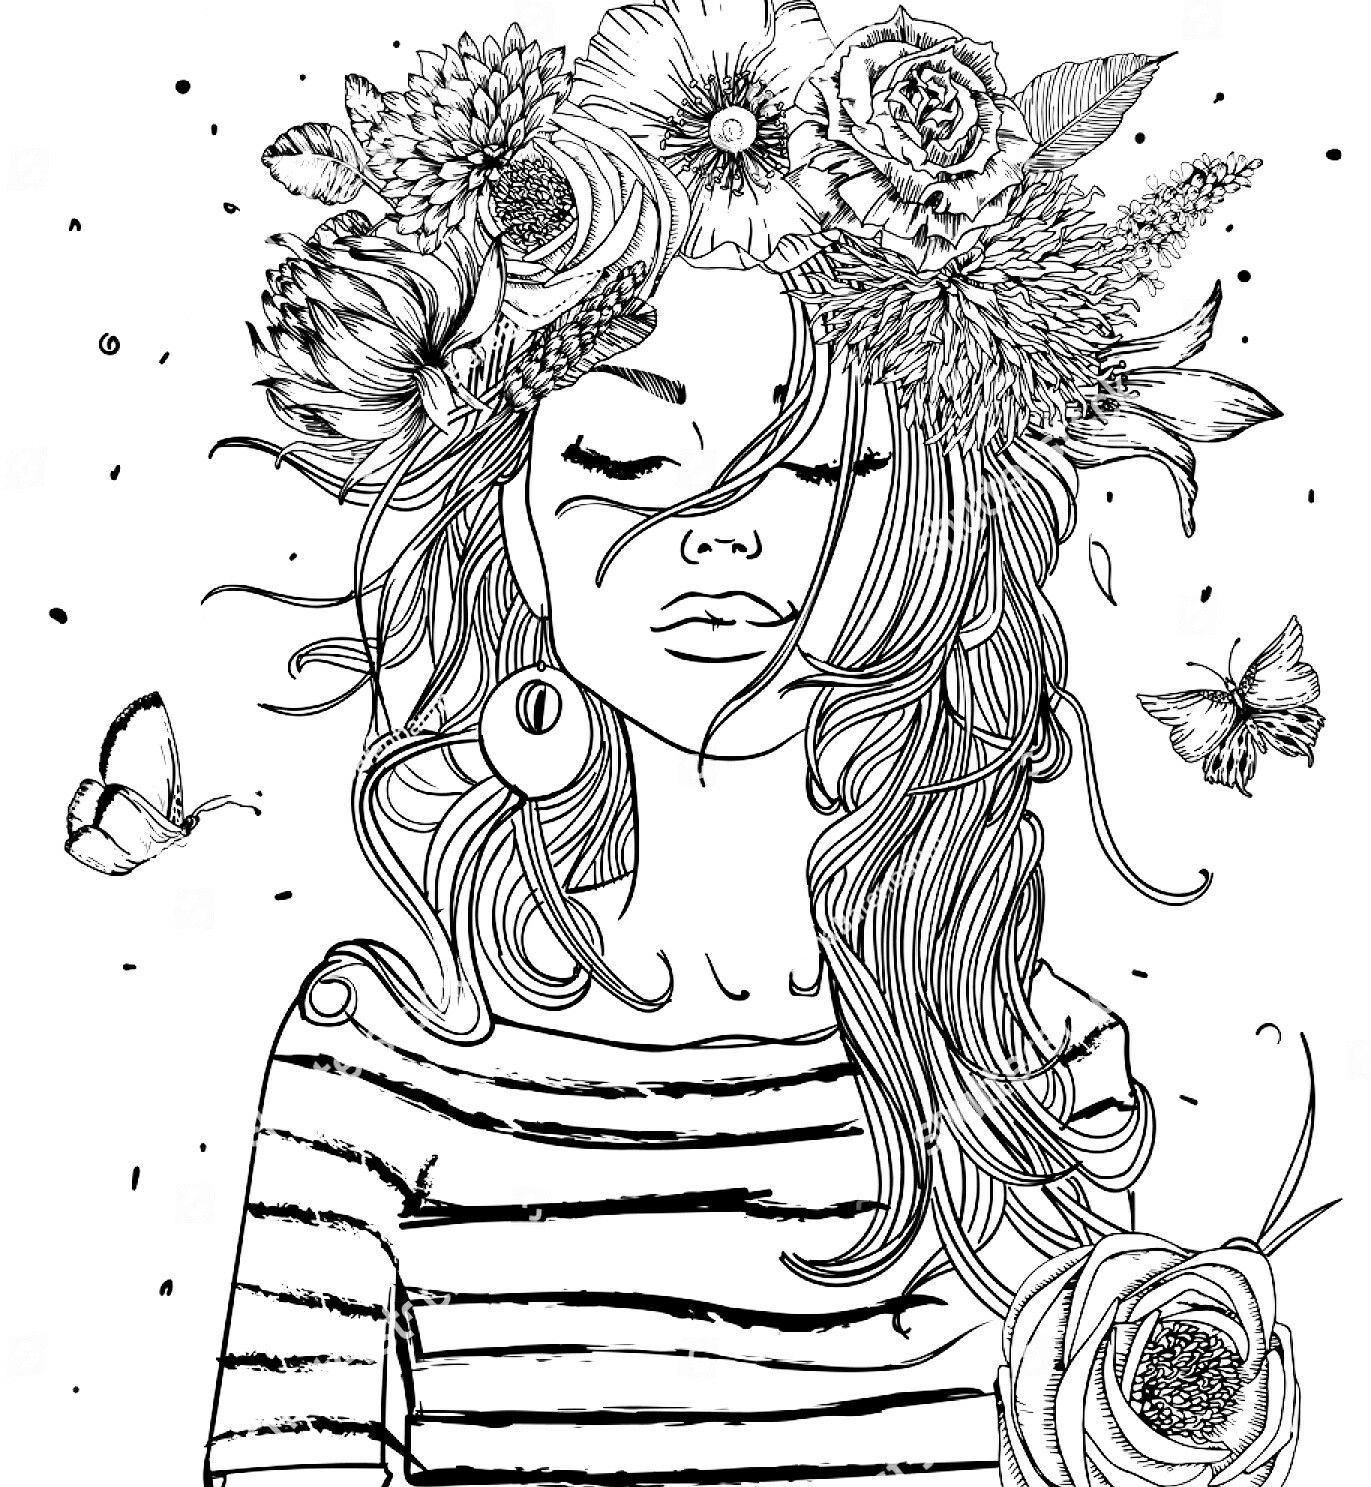 Pin de noe sanchez en colorear pinterest coloriage colorier y dessin - Coloriage therapie ...